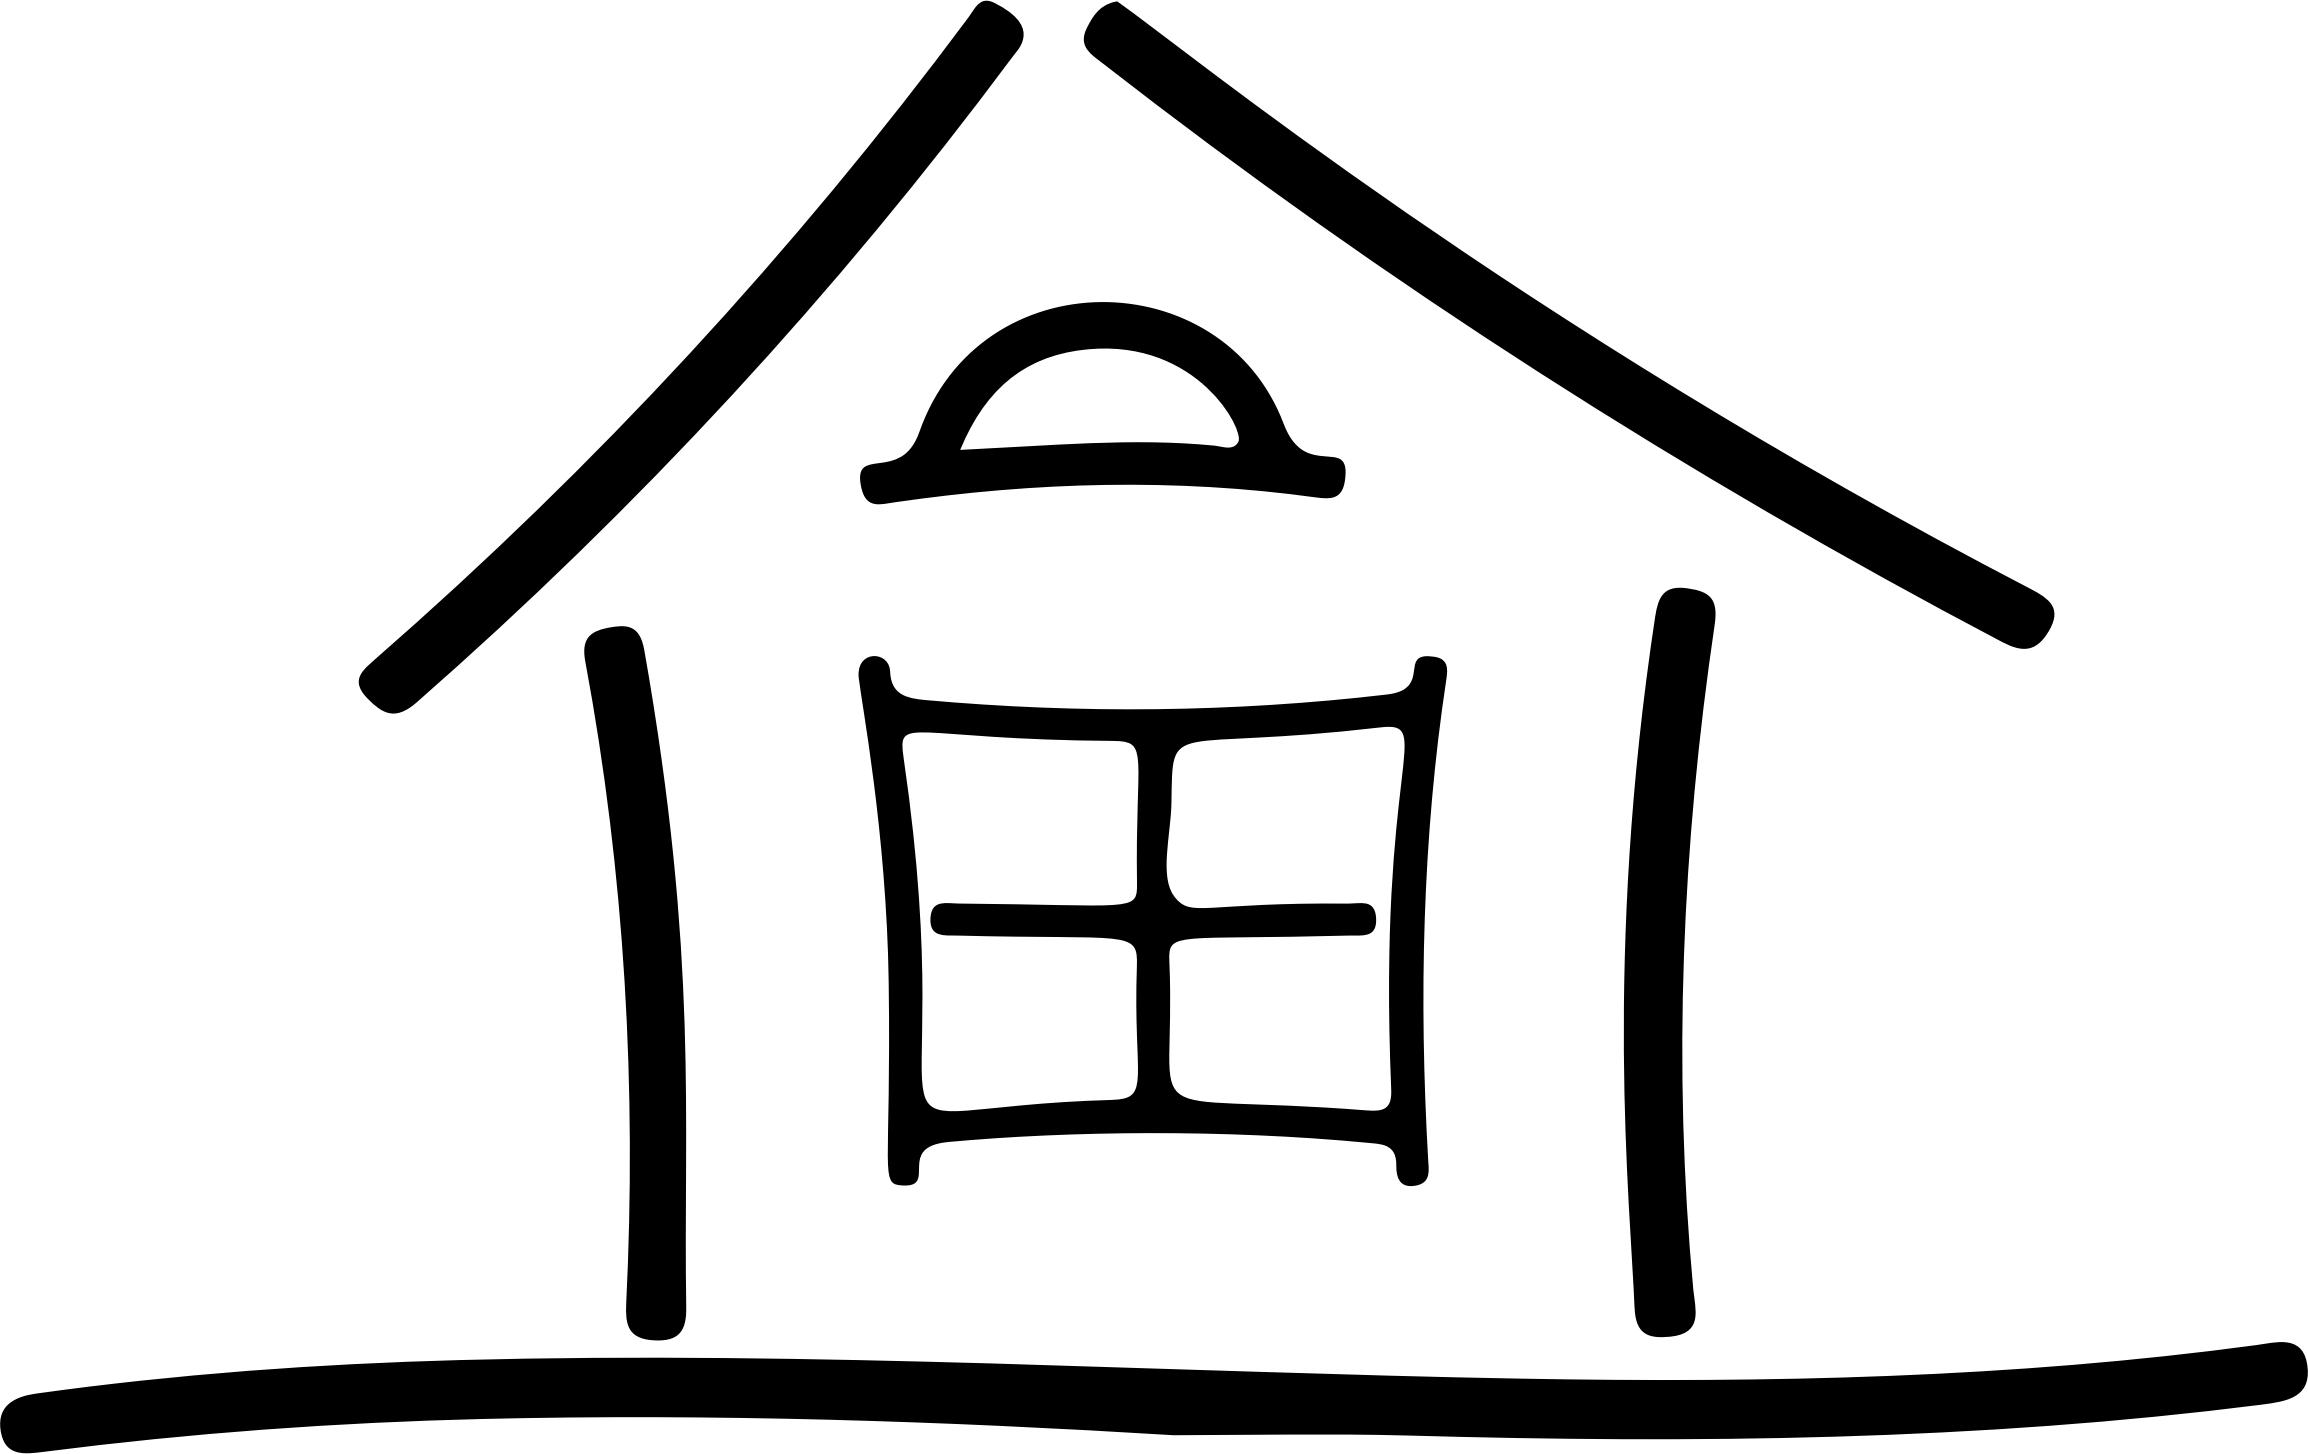 Simple House Line Art - Simple House PNG HD